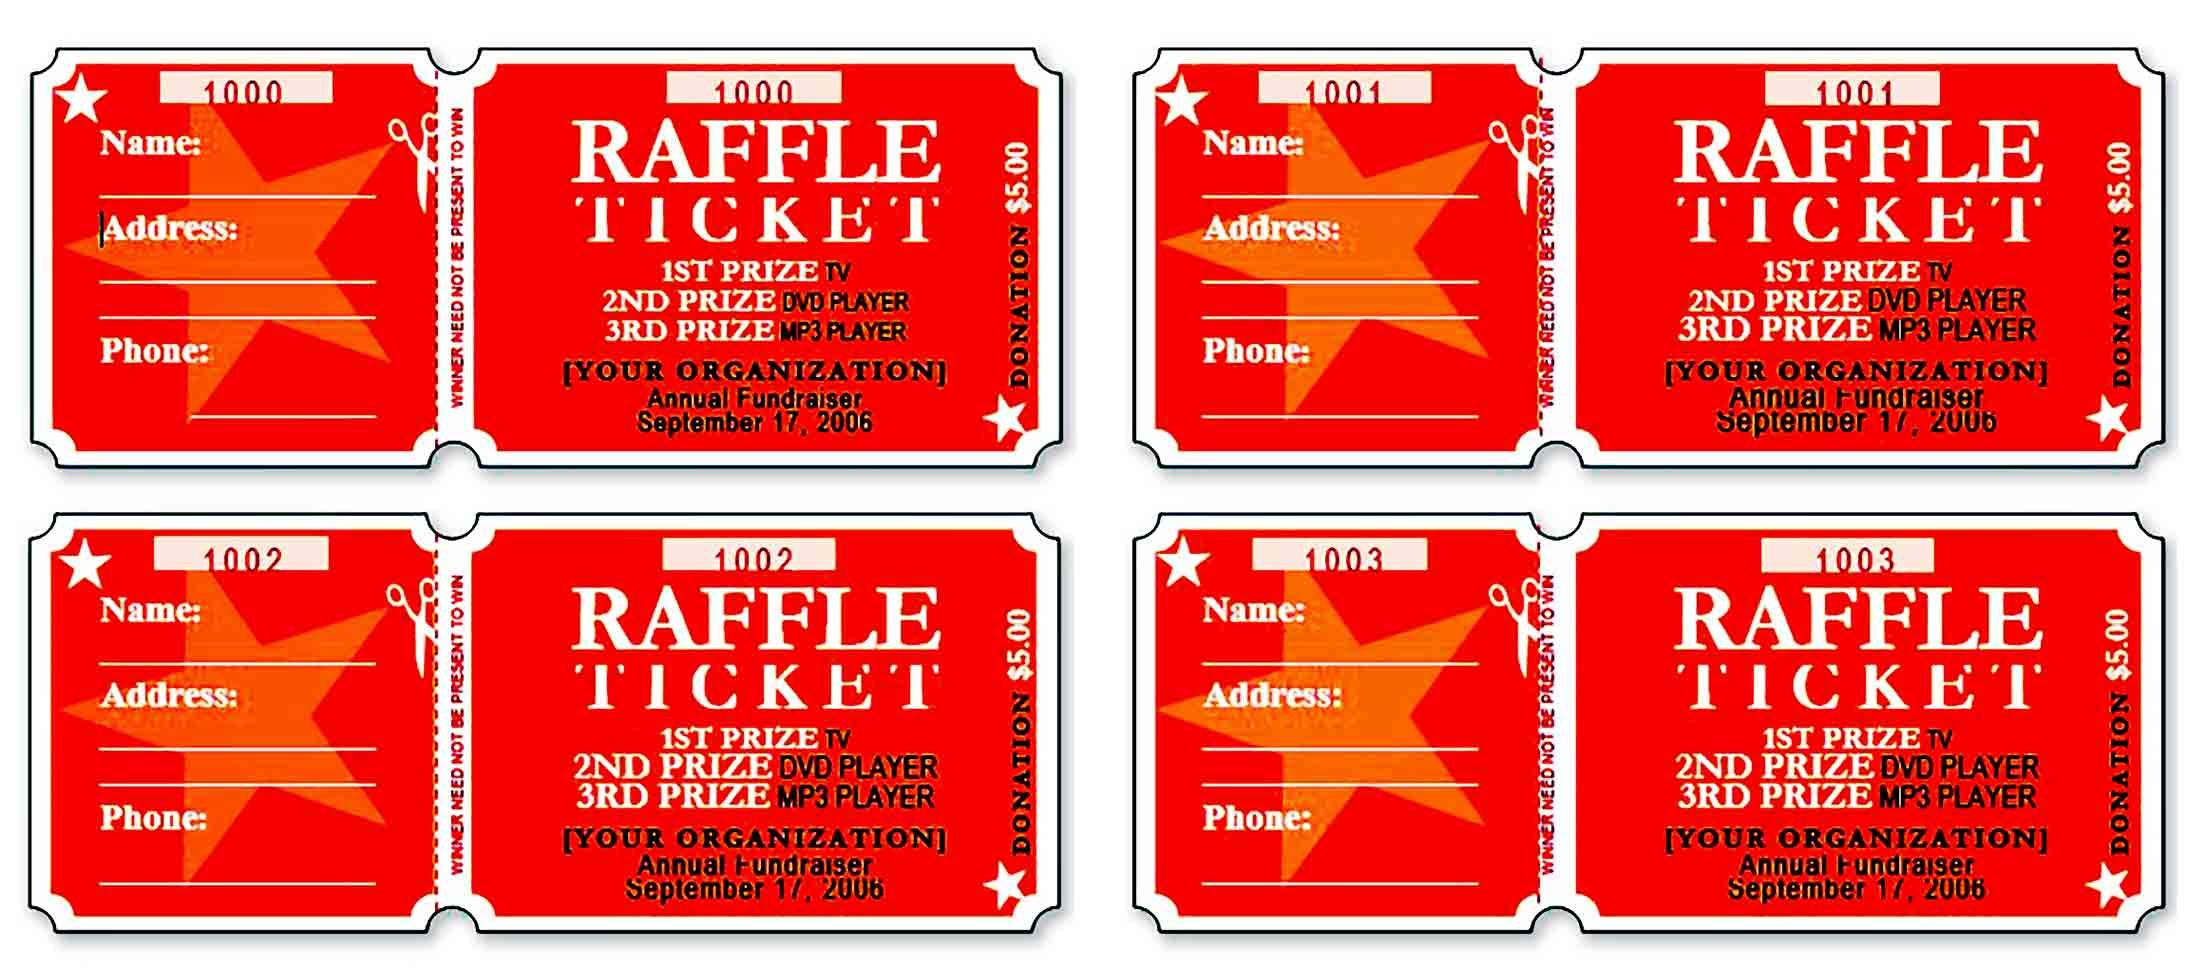 Raffle Ticket Template And How To Make One To Make Your Brand Known By Customers Raffle Tickets Template Ticket Template Raffle Ticket Raffle ticket with stub template